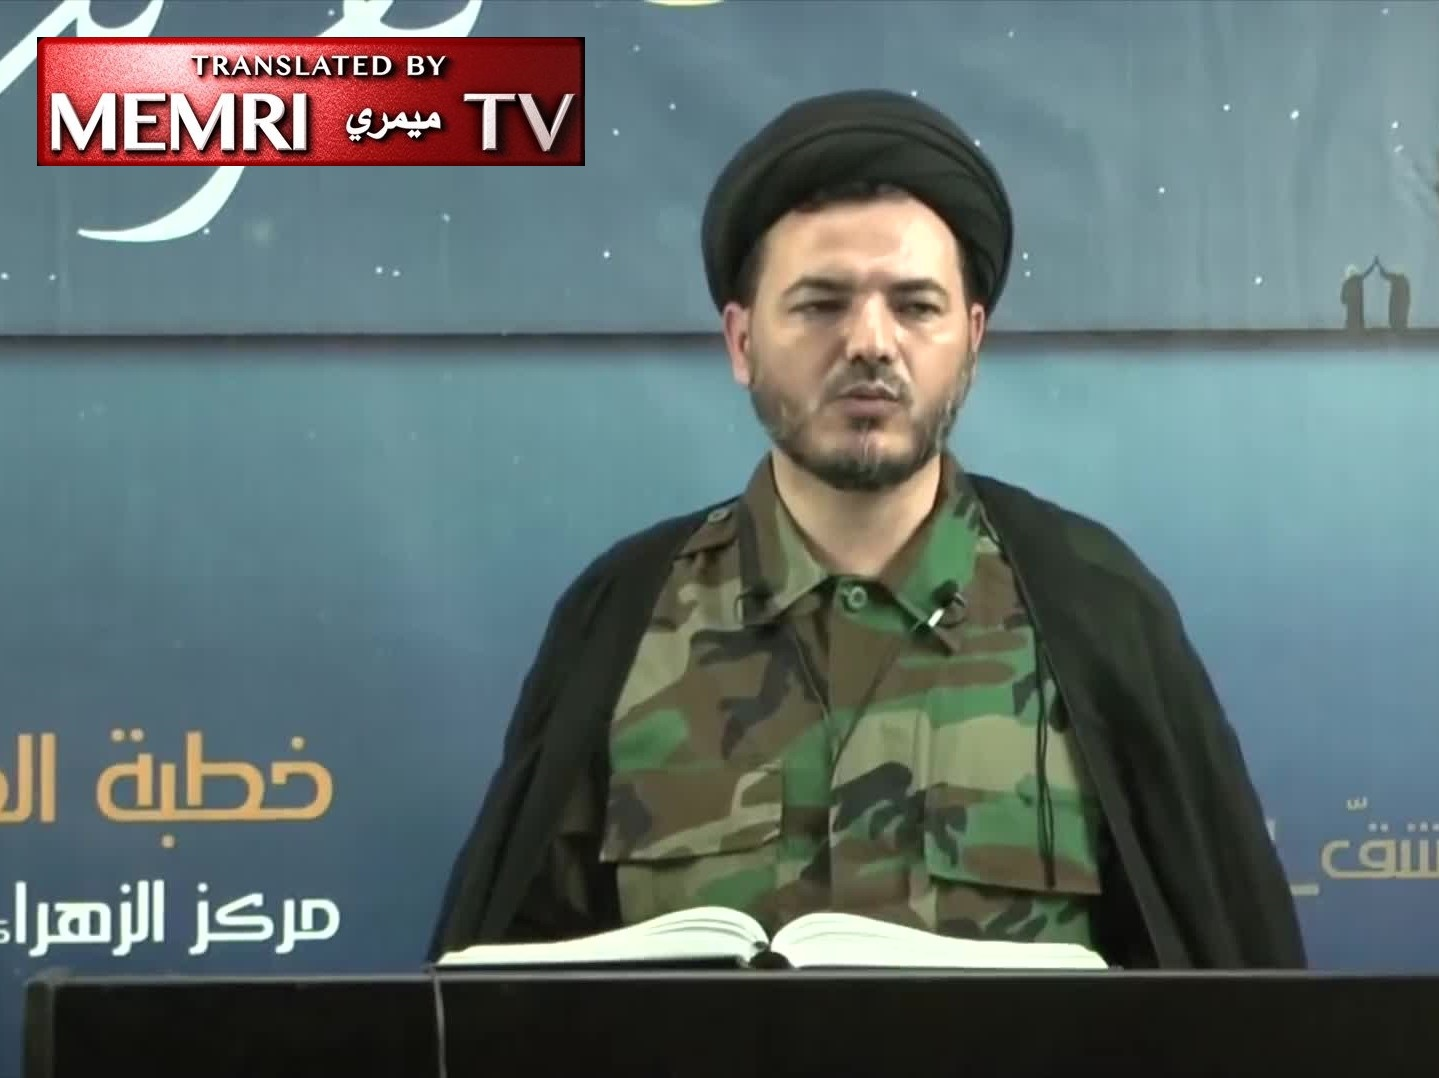 Cleric Ali Talal at Shiite Mosque in France: We Will Uproot Zionism; The Zionists Are the Source of All Disputes